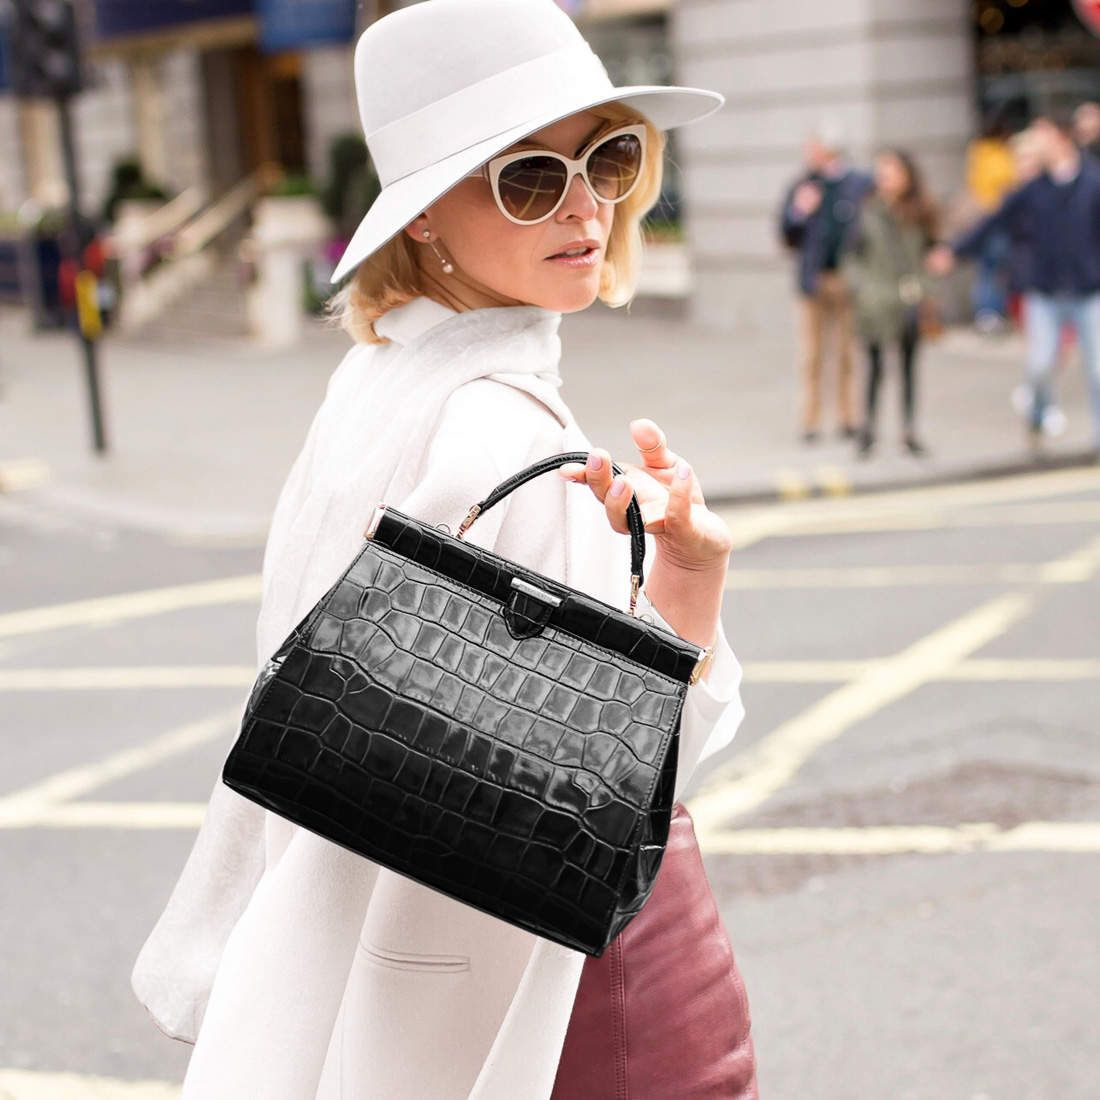 Large Florence Frame Bag in Deep Shine Black Croc from Aspinal of London 44a28851c92